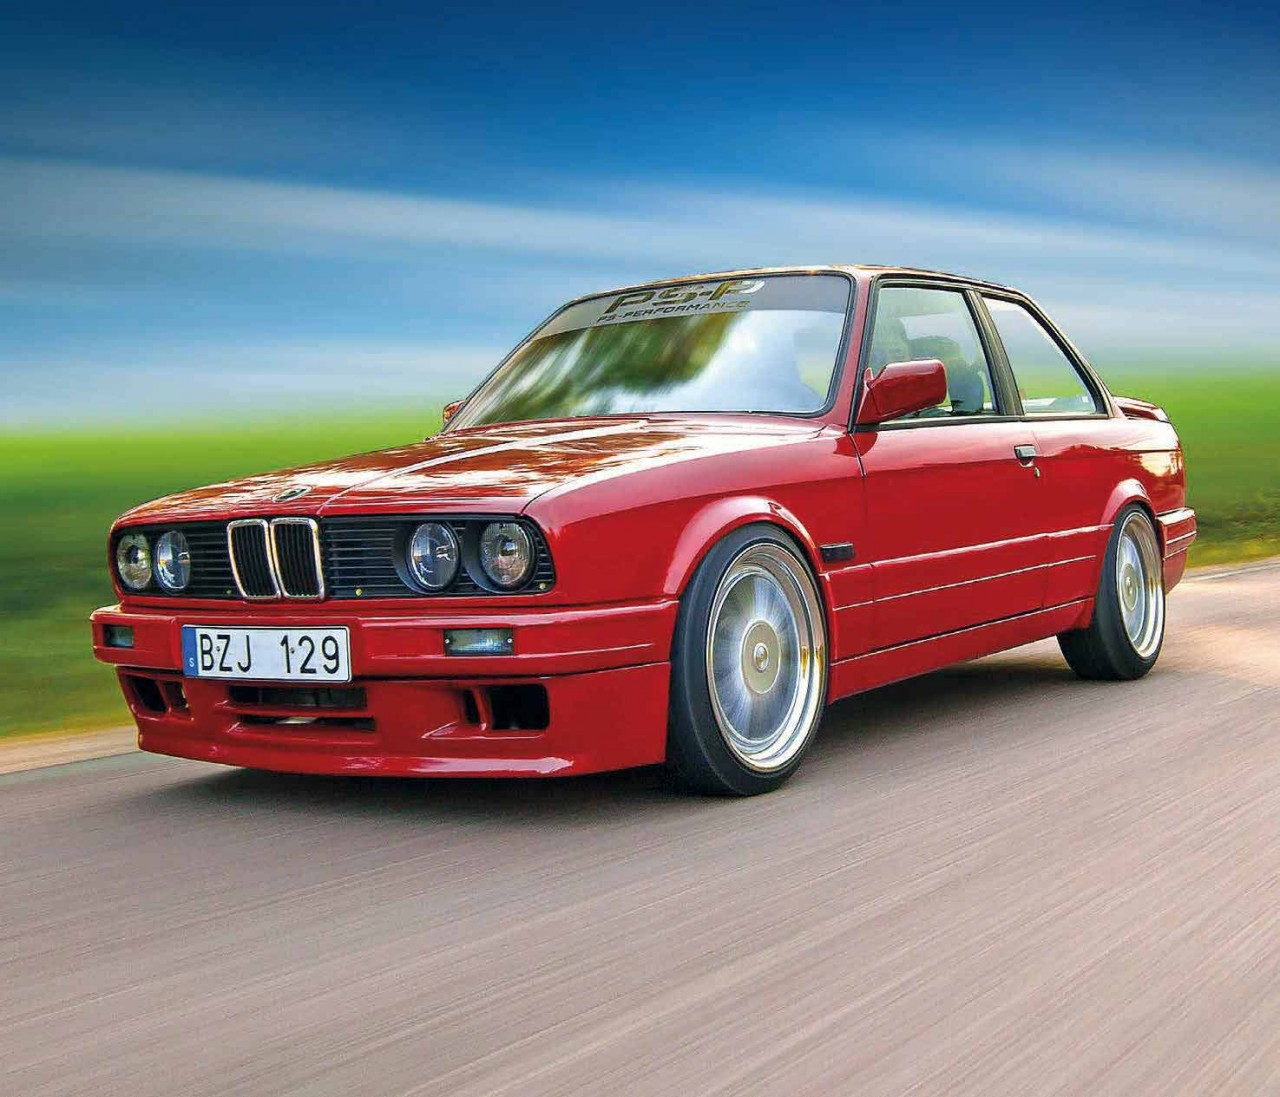 wild 400hp s62 v8 swapped bmw e30 coupe drive my blogs. Black Bedroom Furniture Sets. Home Design Ideas